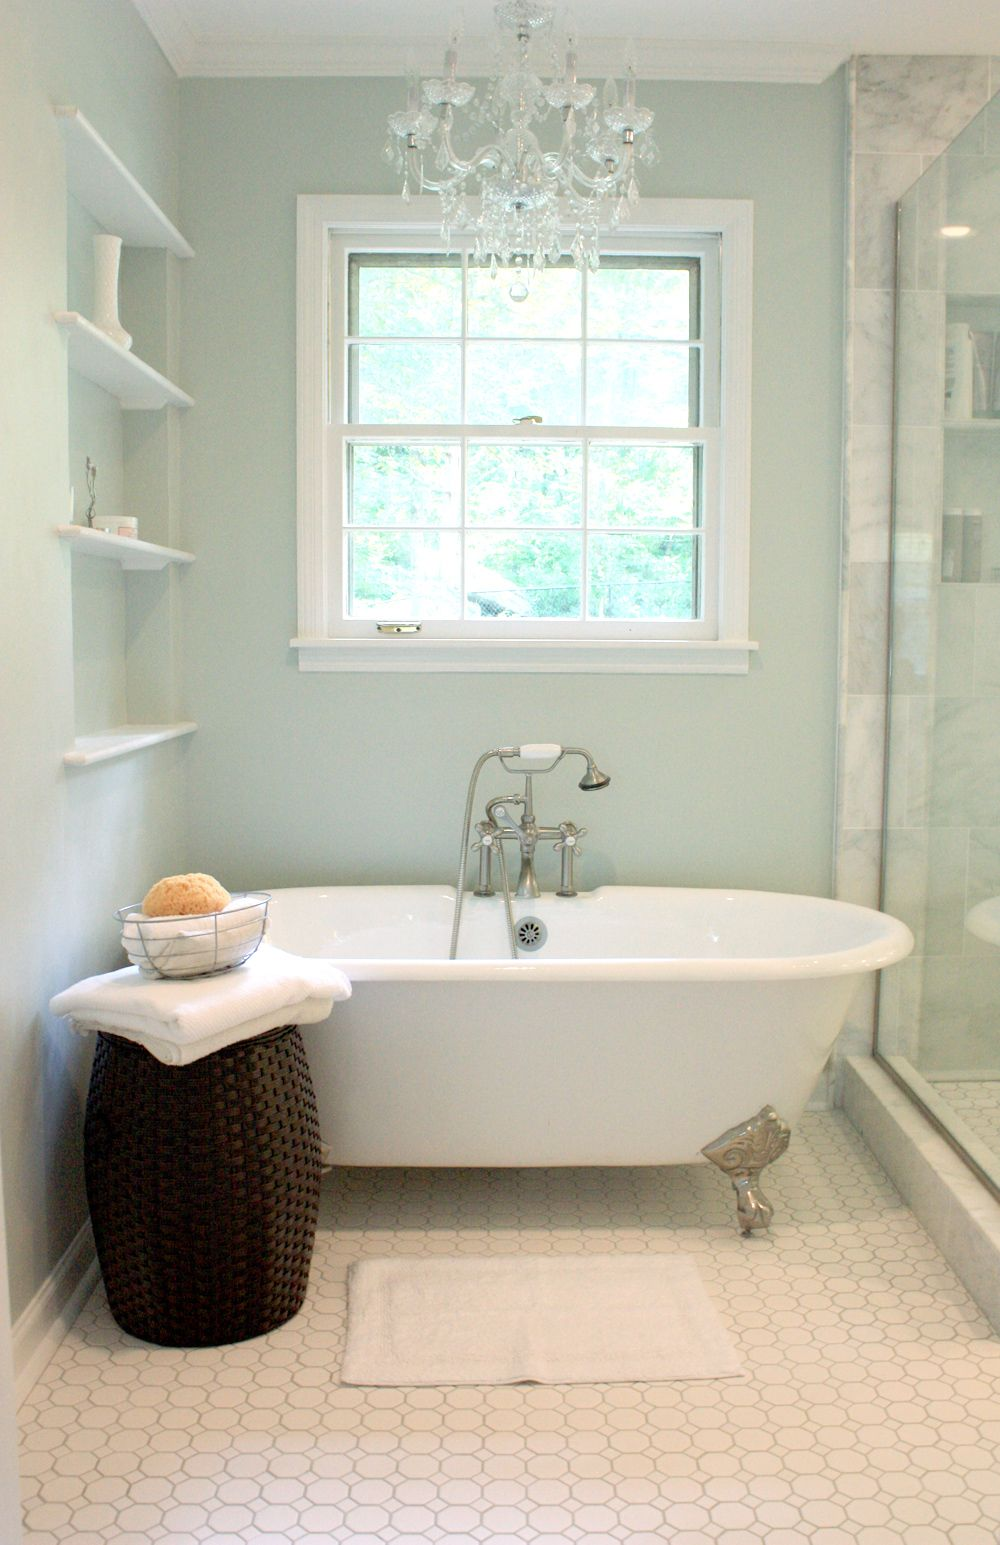 Sherwin williams paint colors sherwin williams 6249 storm cloud - Paint Color Sherwin Williams Sea Salt Is One Of The Most Popular Green Blue Gray Paint Colour Good For A Spa Or Beach Theme Bathroom Or Room